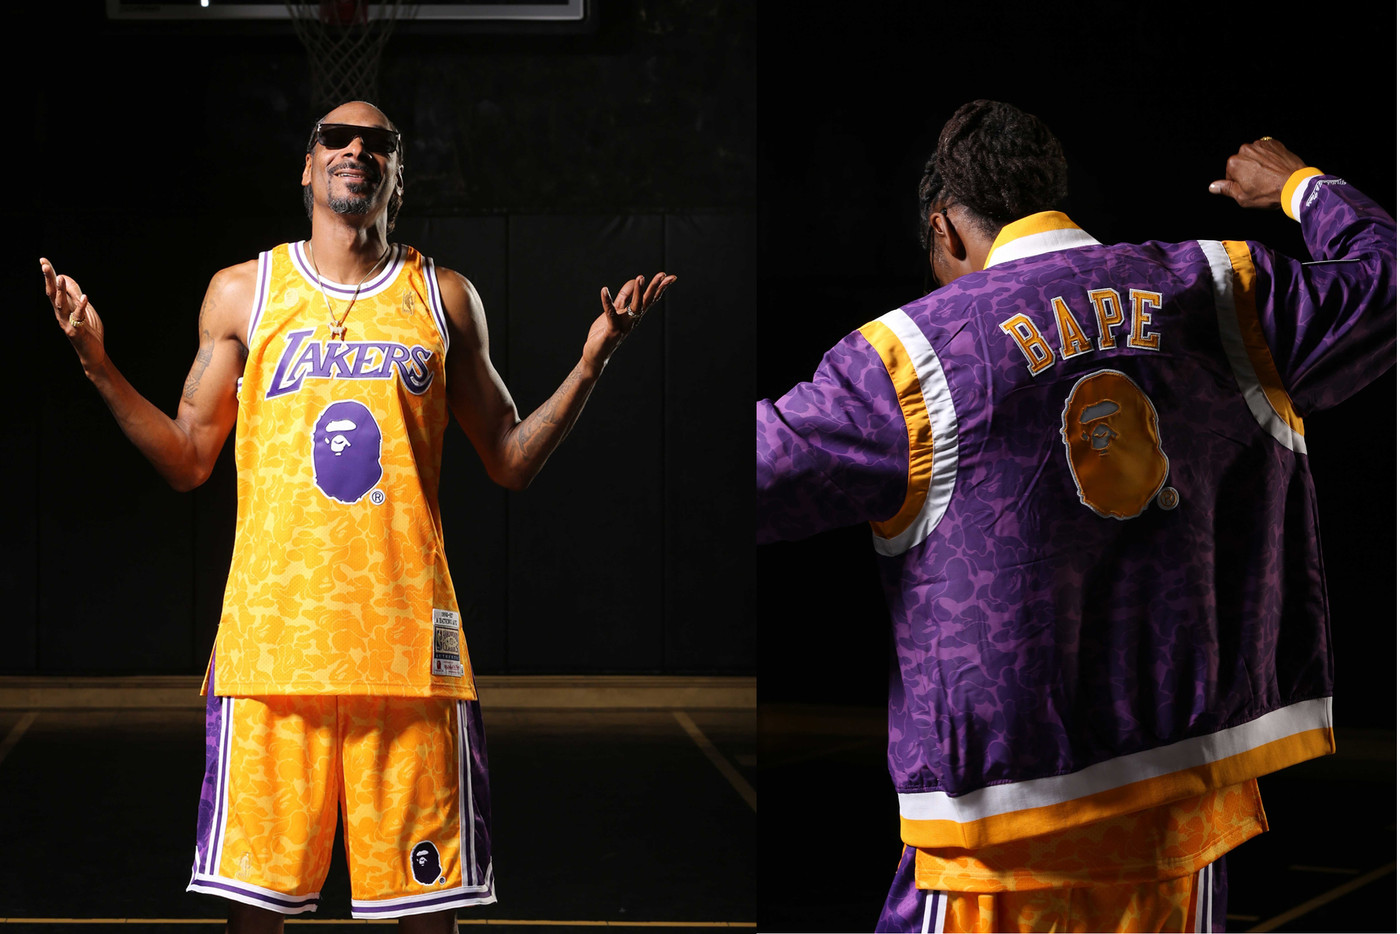 BAPE Releases NBA Collection With Mitchell & Ness